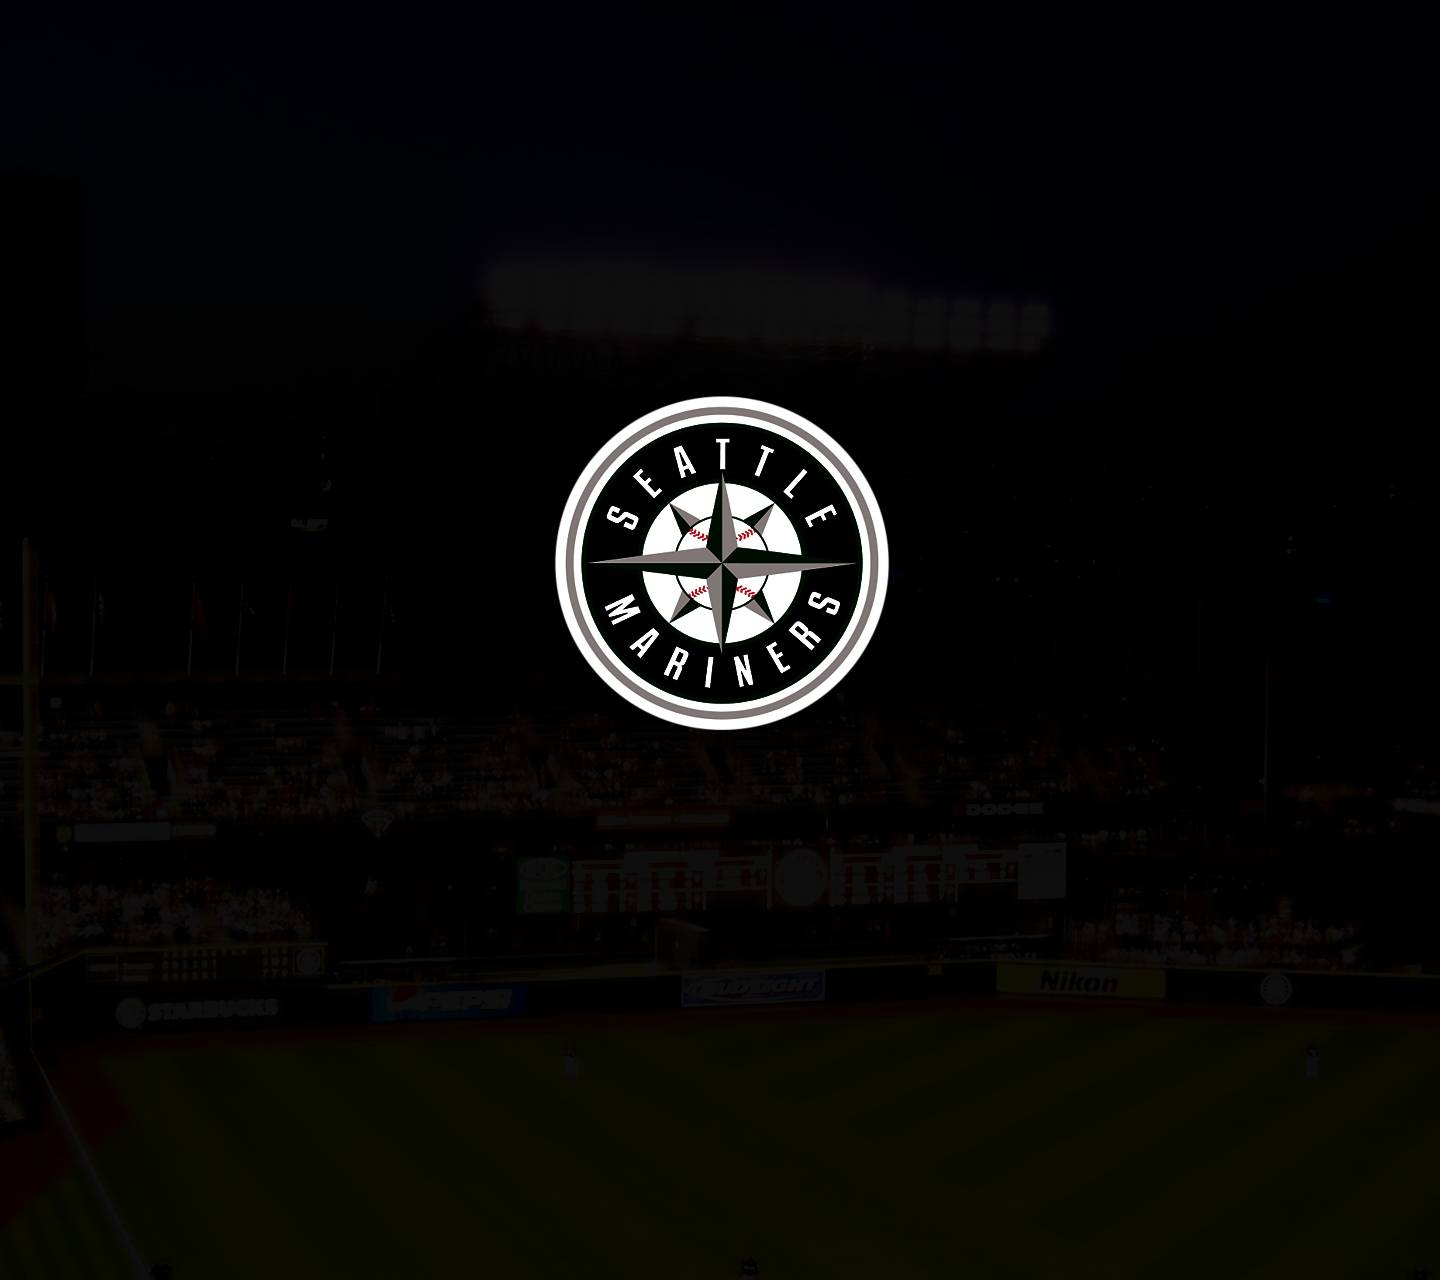 Safeco And Mariners Wallpaper By Reggie Cheeks Dd Free On Zedge